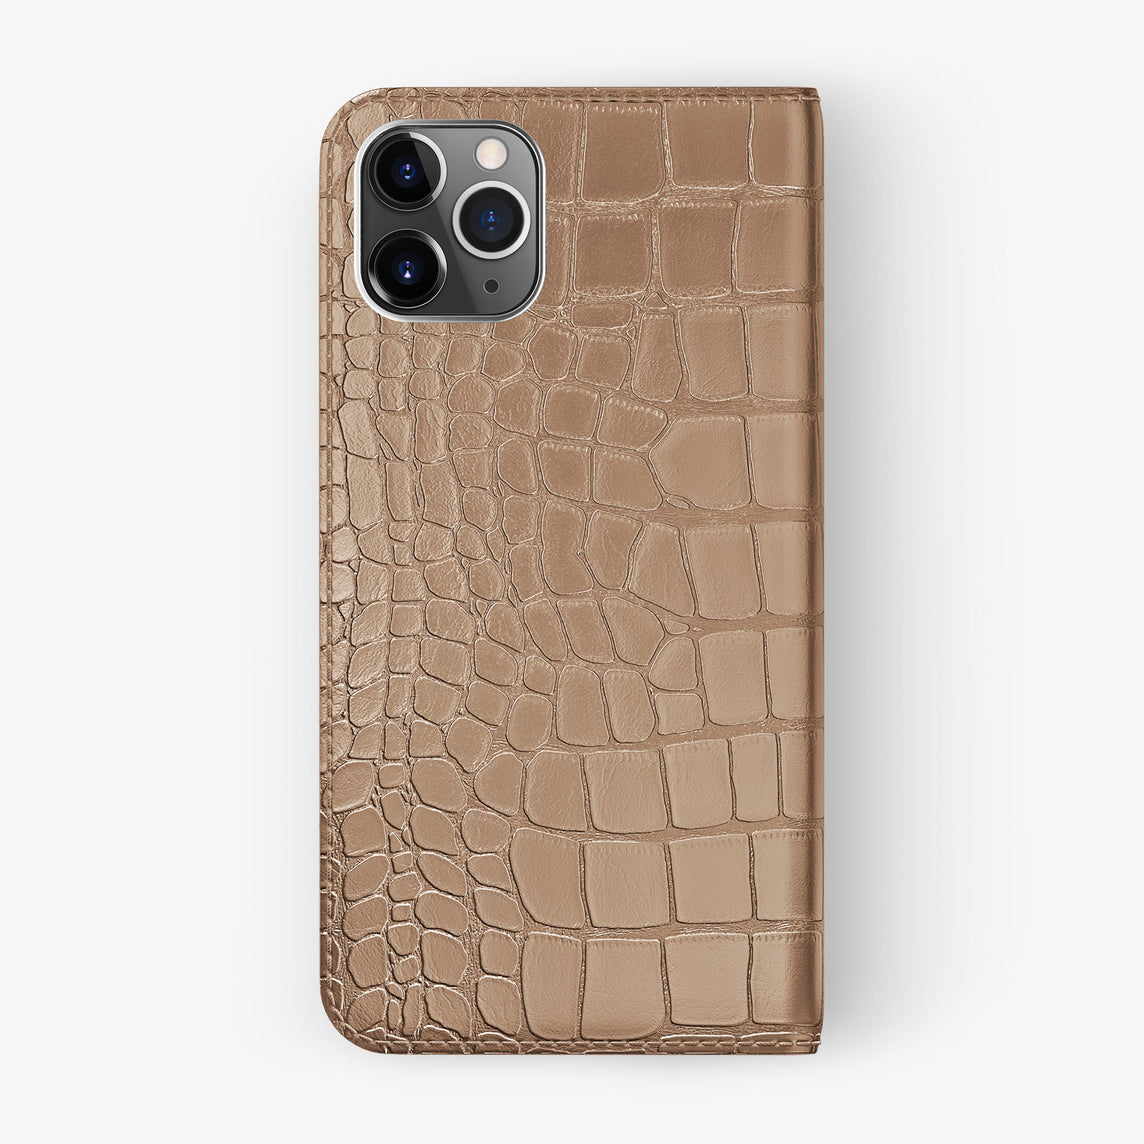 Alligator Folio Case iPhone 11 Pro Max | Latte - Stainless Steel